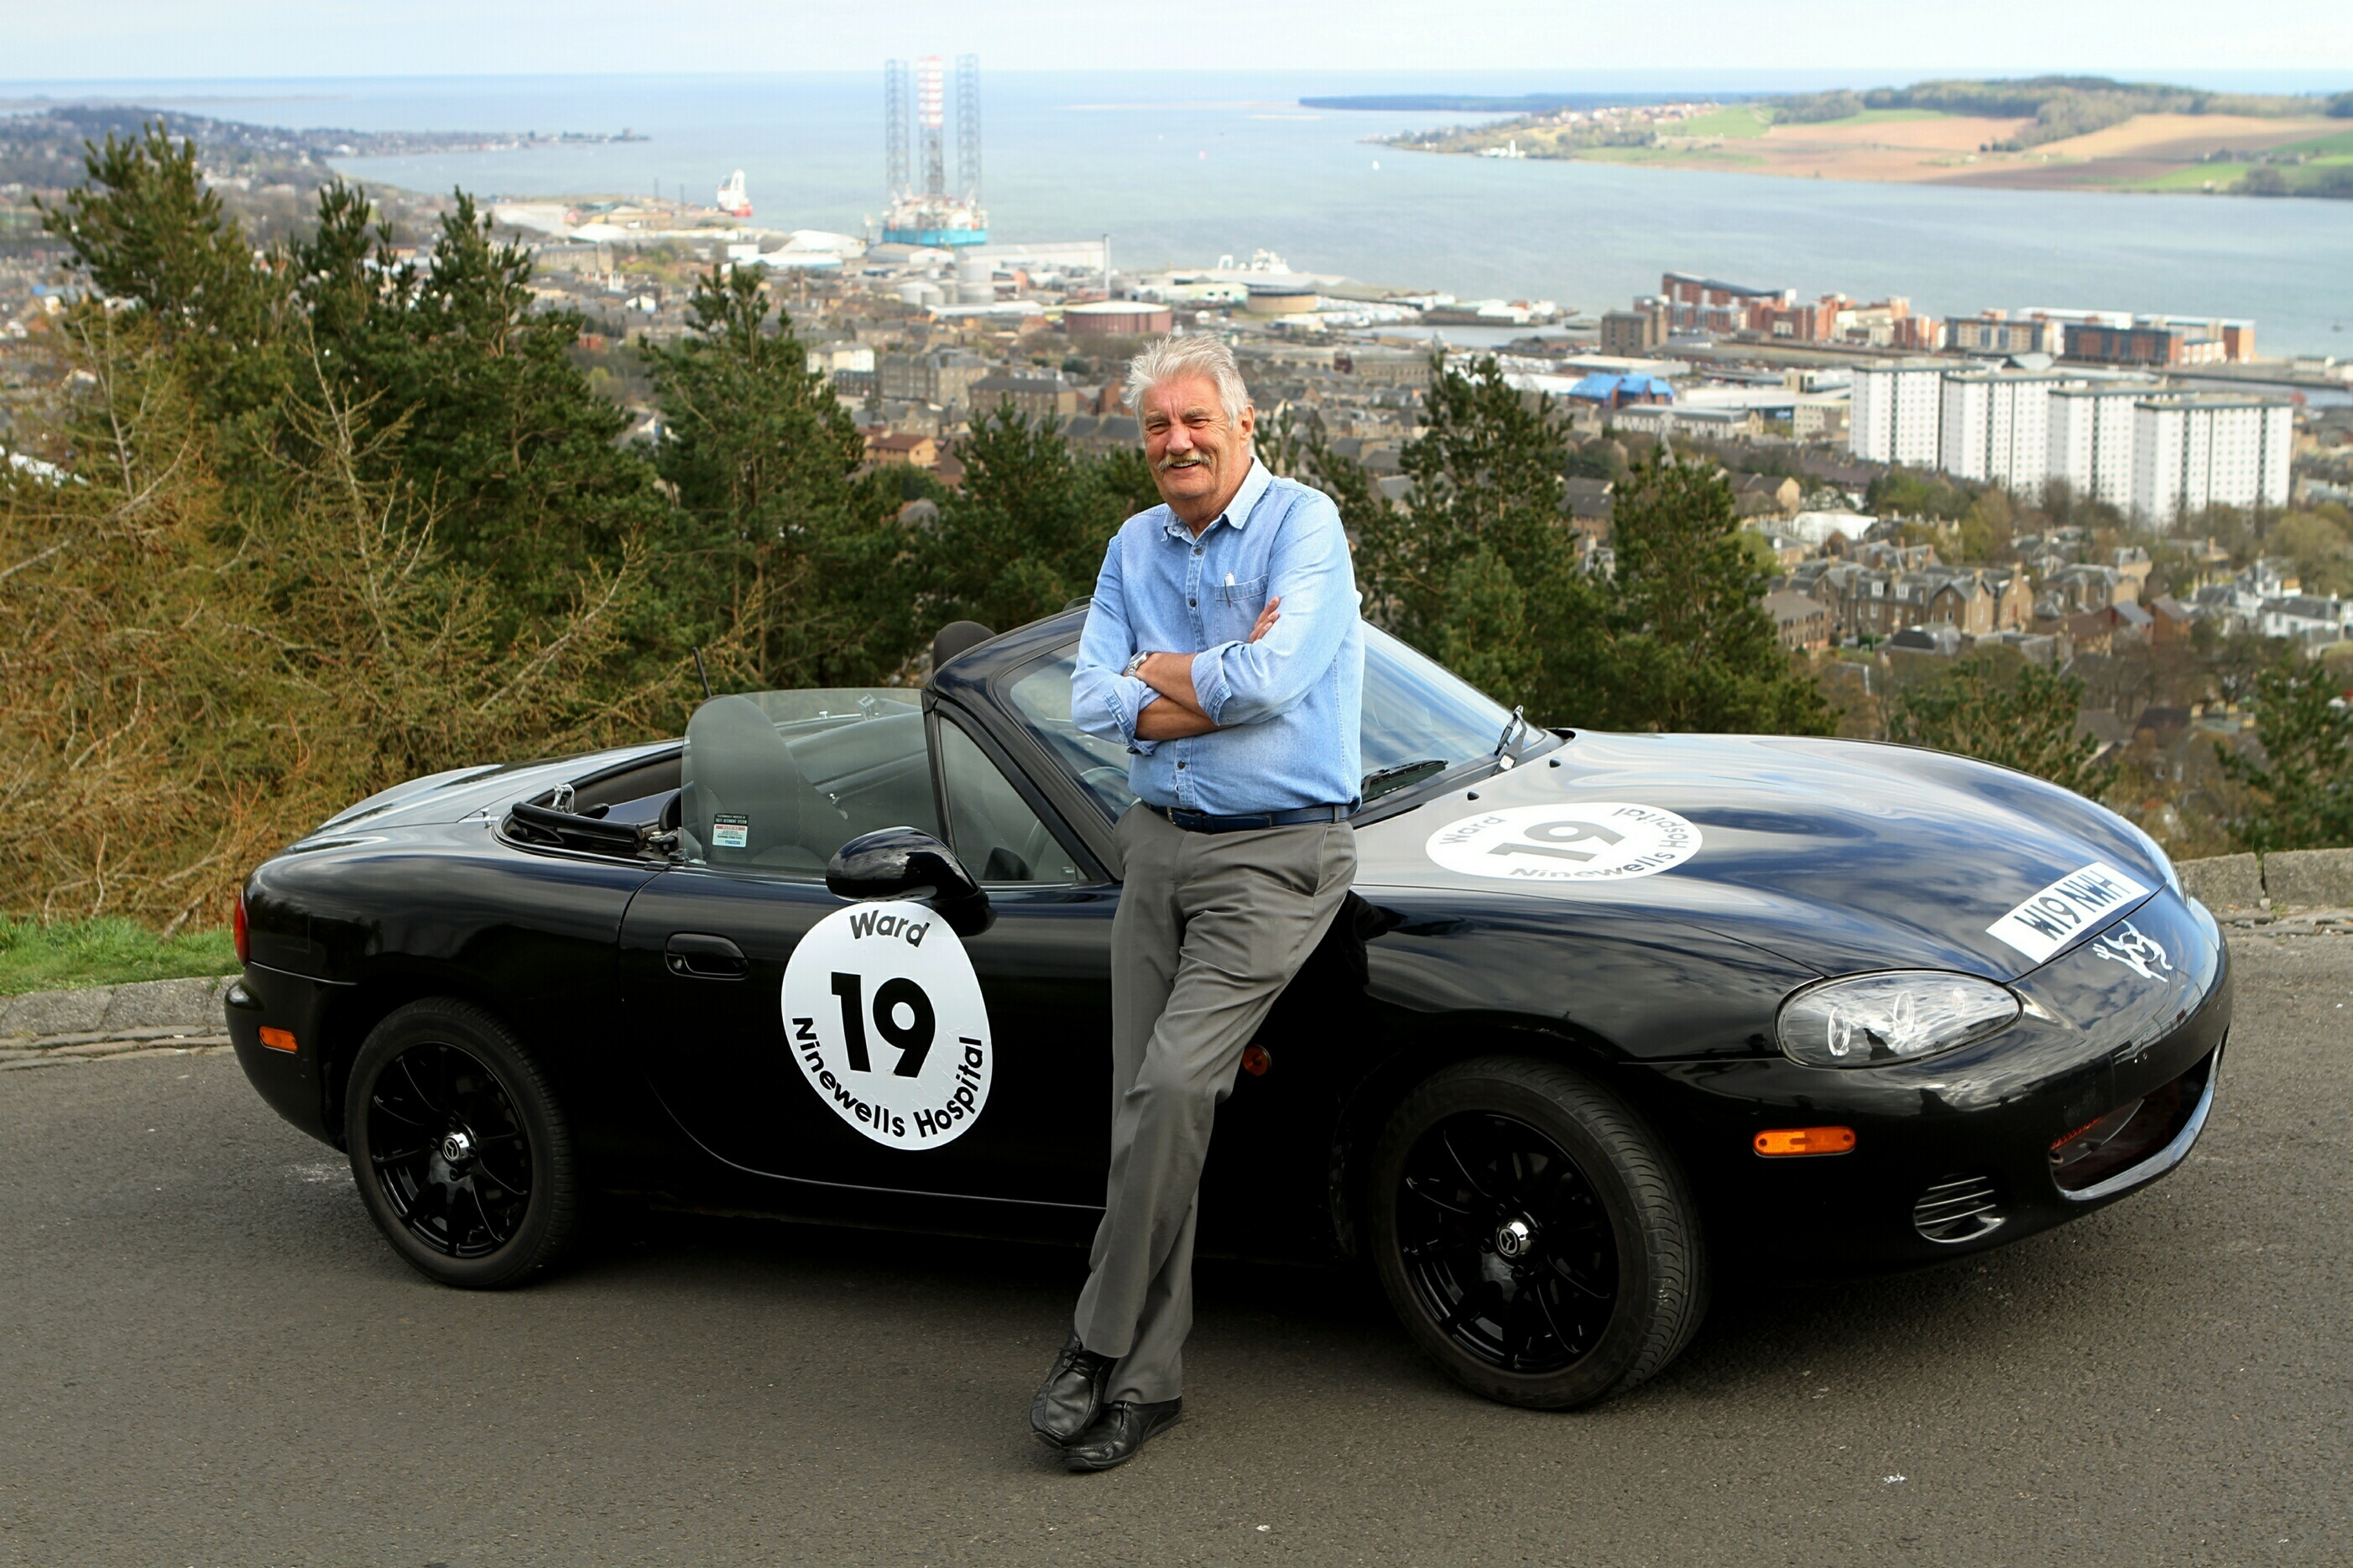 Norrie Bland is offering advertising space on his MX-5.